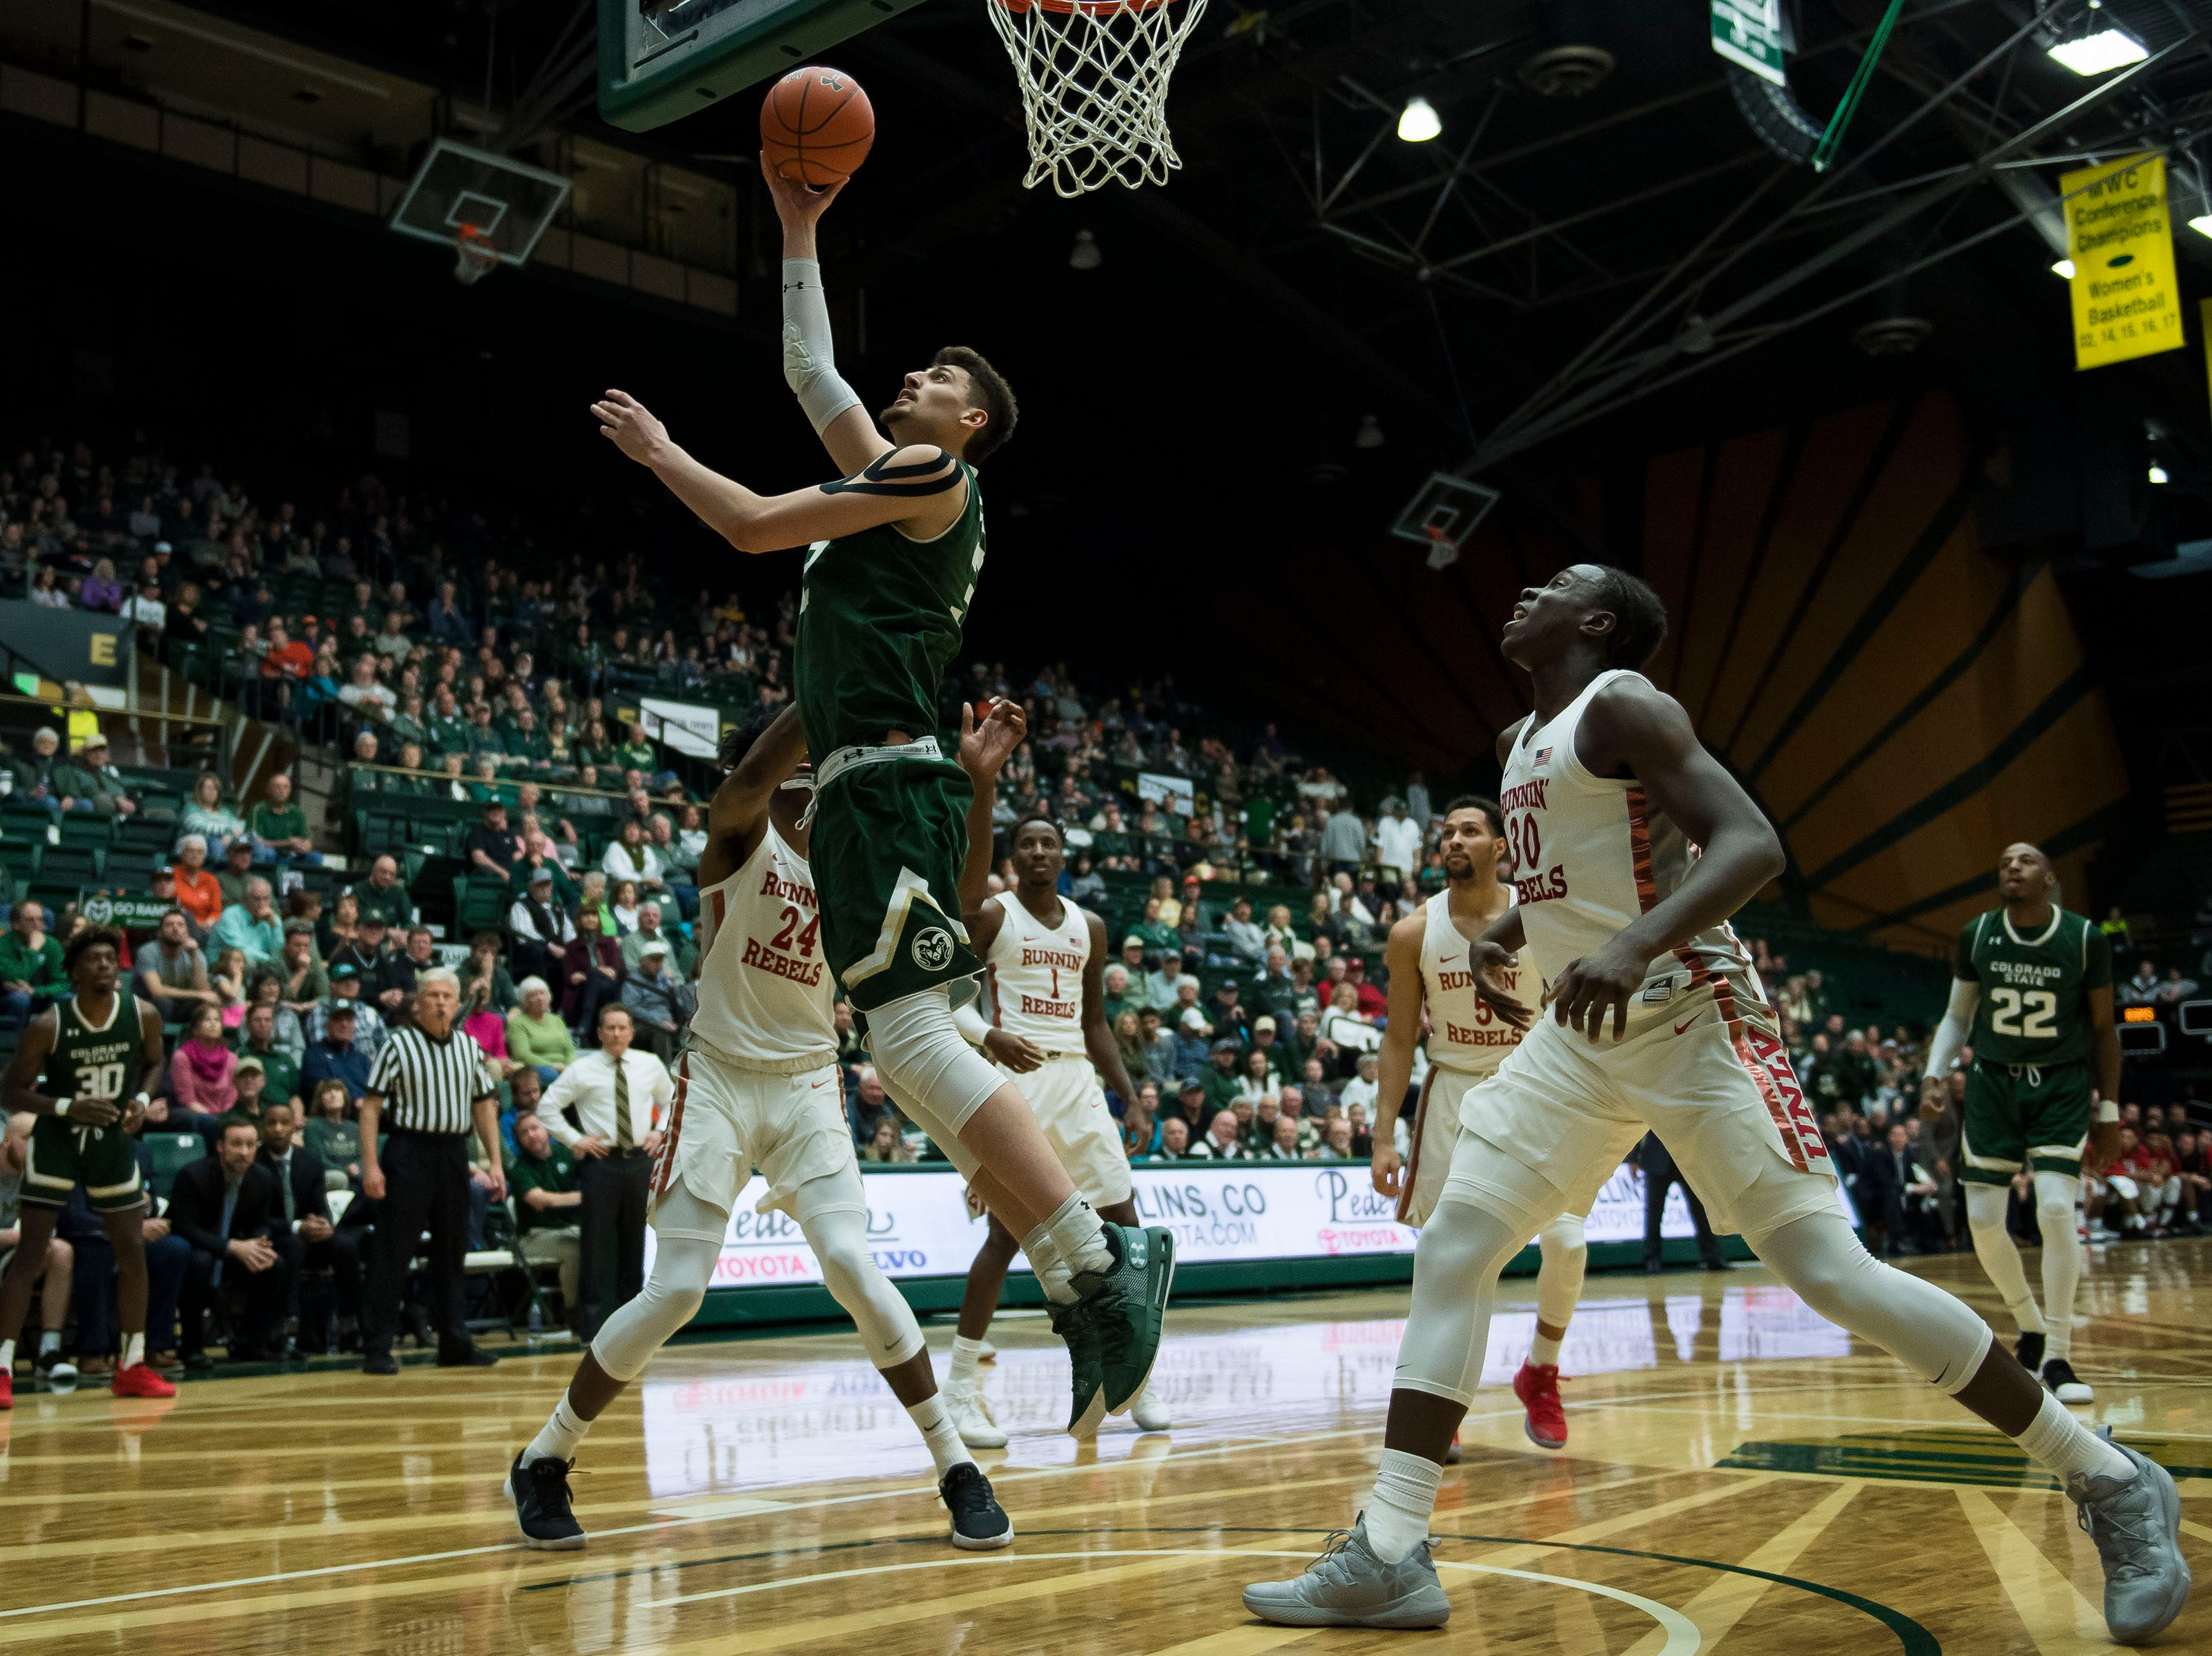 Colorado State University junior center Nico Carvacho (32) puts a shot up during a game against University of Nevada Las Vegas on Saturday, March 9, 2019, at Moby Arena in Fort Collins, Colo.